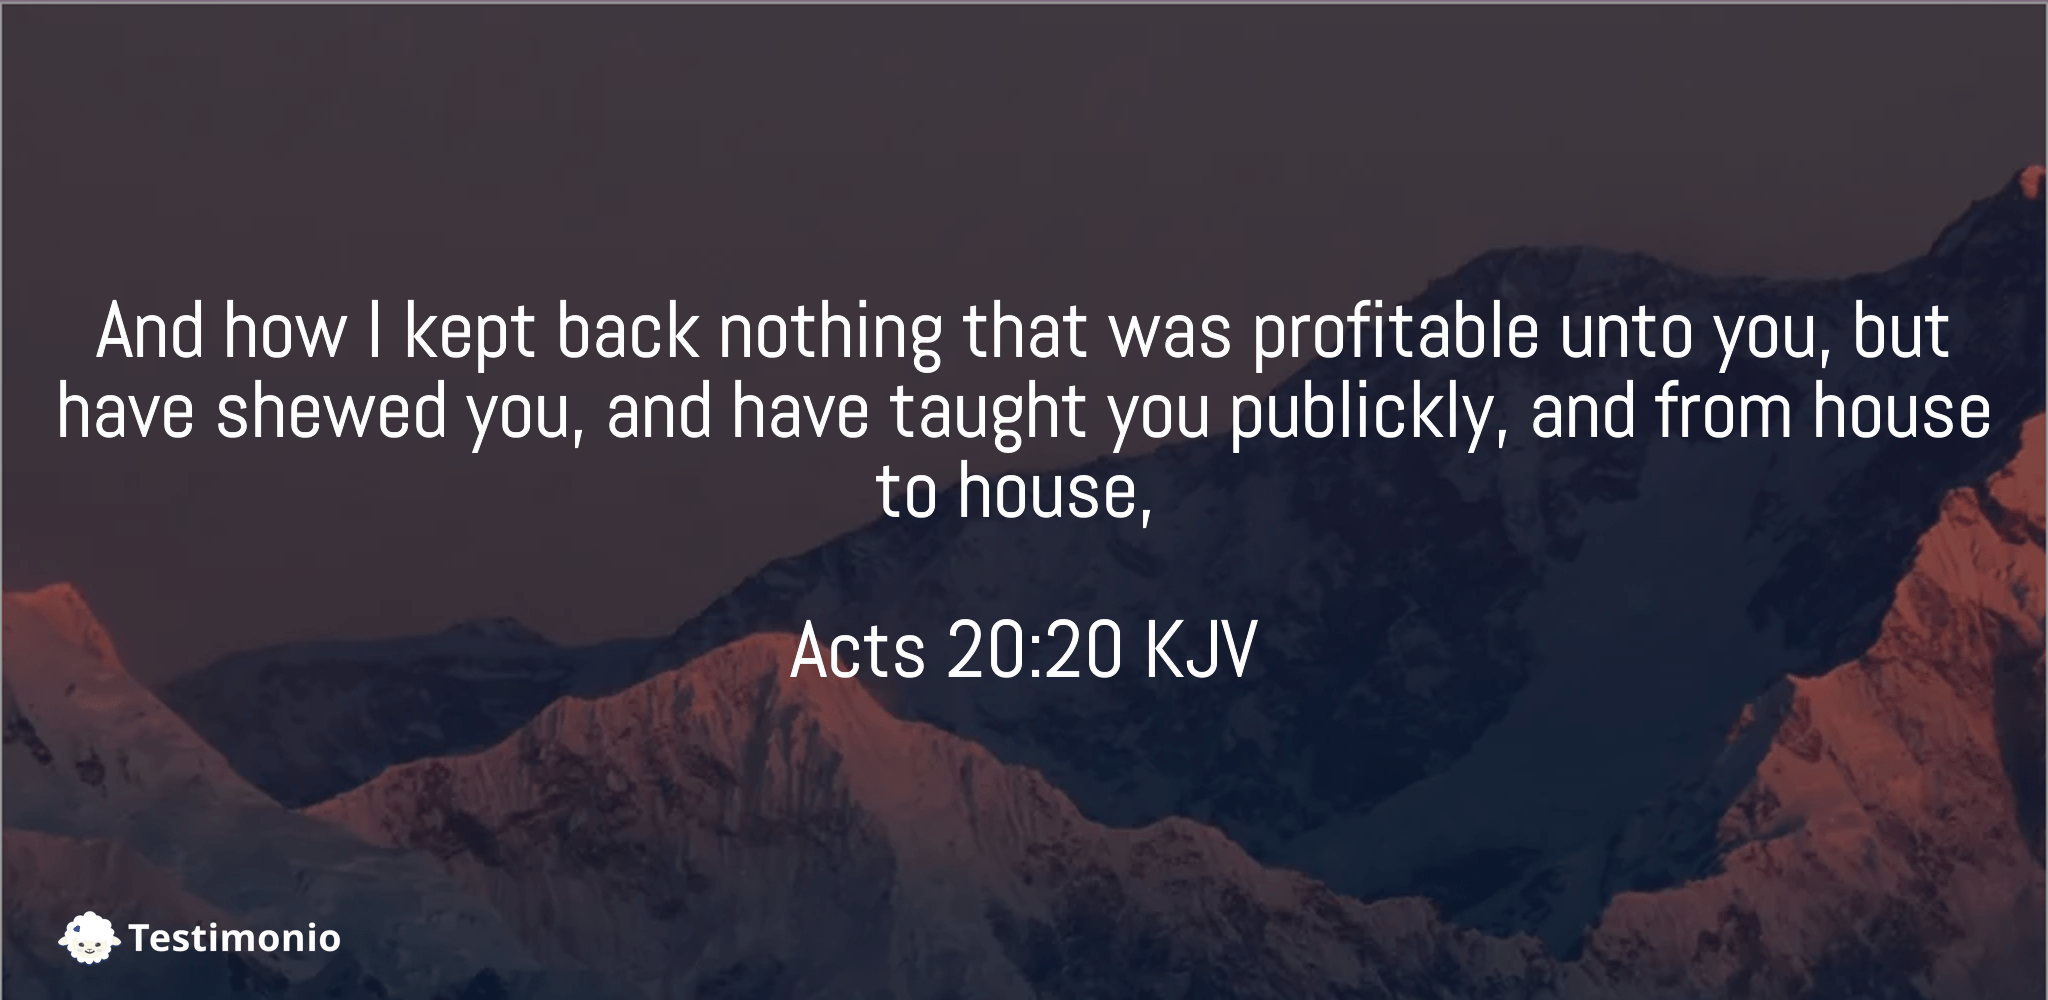 Acts 20:20